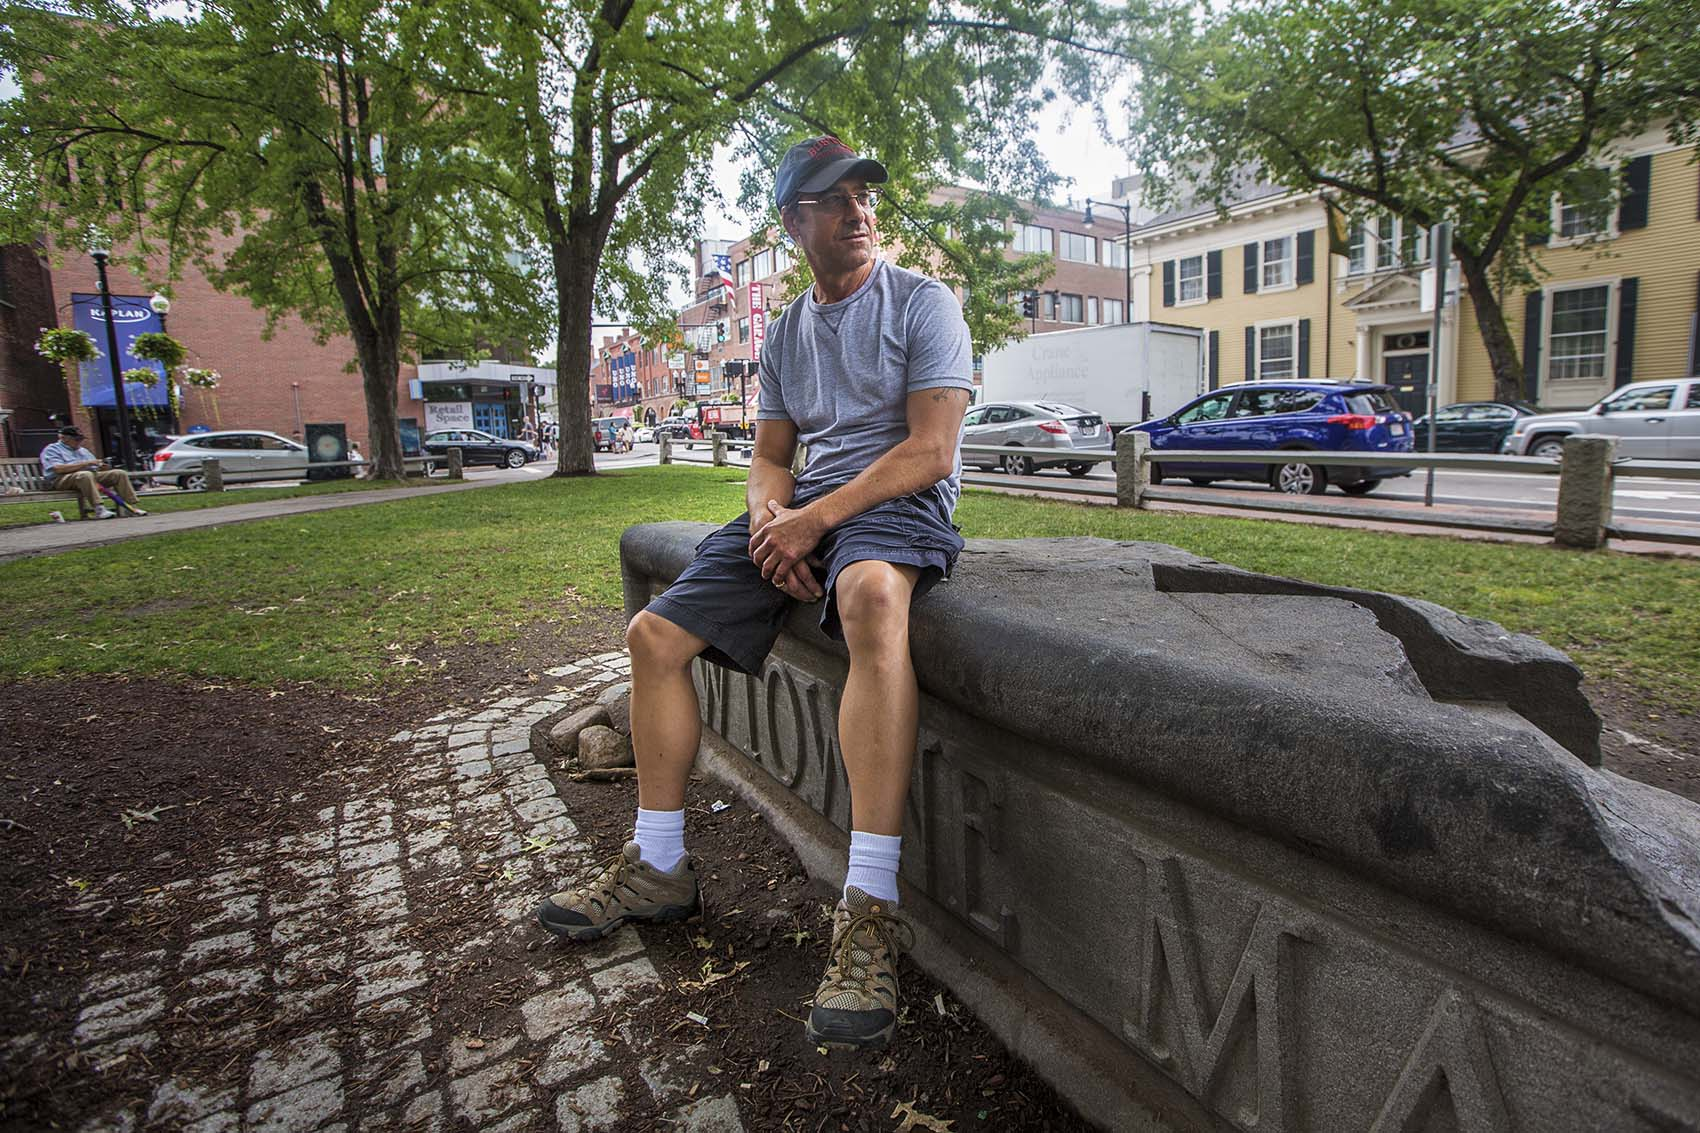 Greg Diatchenko, now 52, sits in Winthrop Square Park in Harvard Square. When he was 17, Diatchenko was sent to prison for life for fatally stabbing a 55-year-old. (Jesse Costa/WBUR)